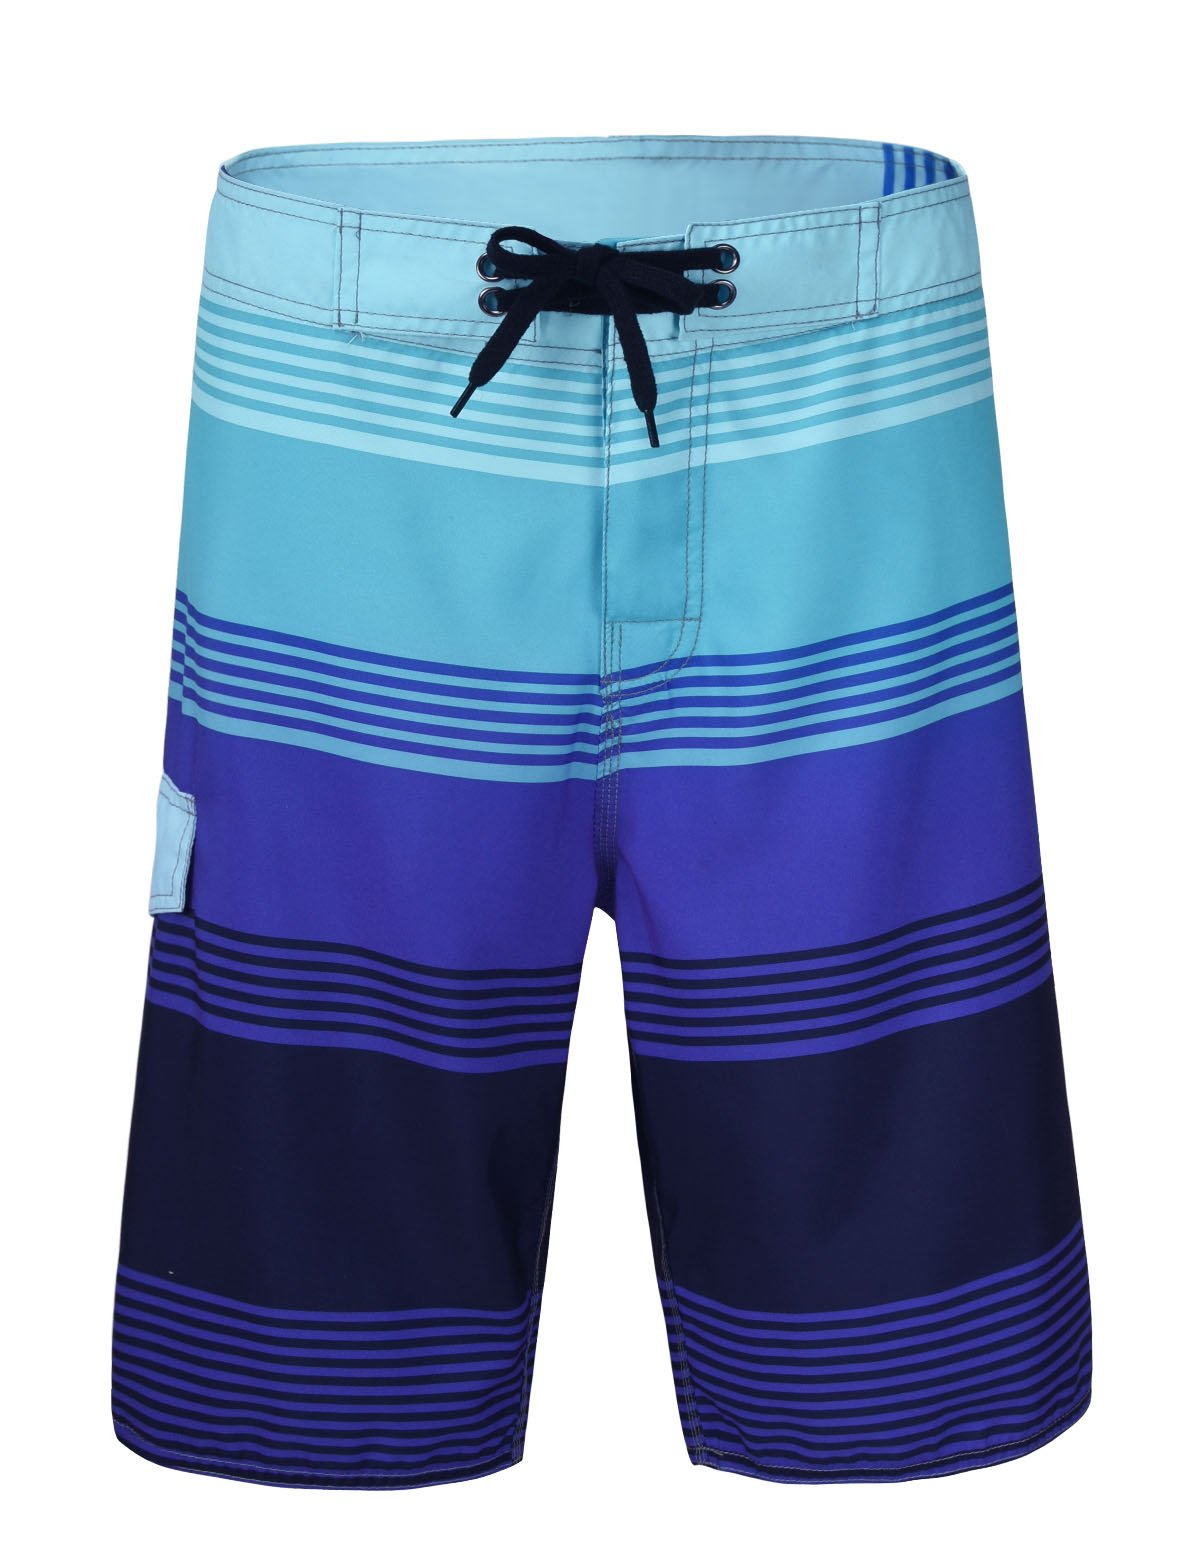 Nonwe Men's Pattern Lightweight Beach Swim Board short 11920 -  32,Blue Stripes